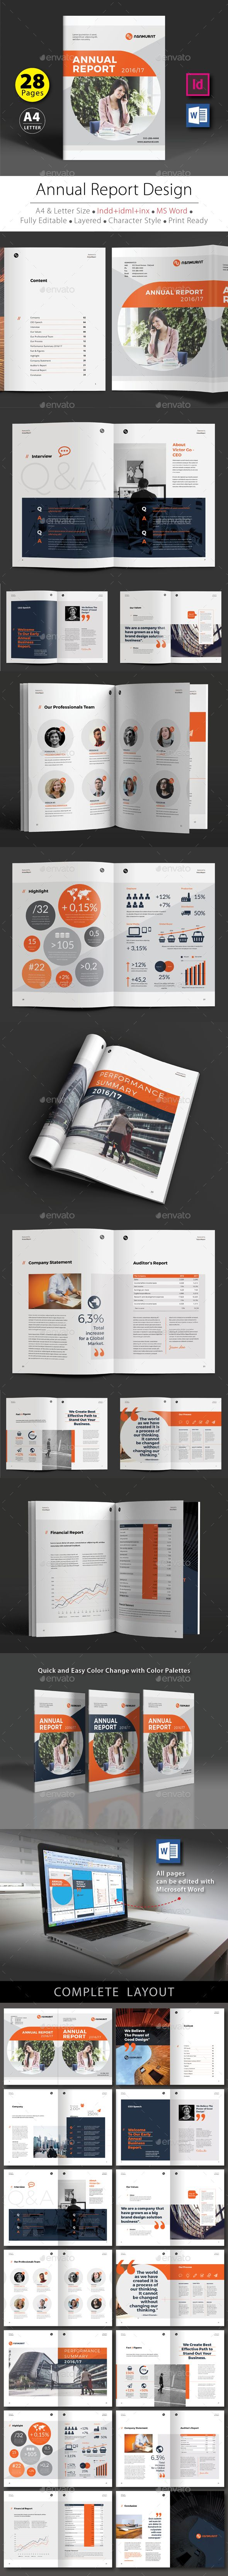 Annual Report Design Template V.4 - Corporate Brochures Download here : https://graphicriver.net/item/annual-report-design-template-v4/19628724?s_rank=146&ref=Al-fatih